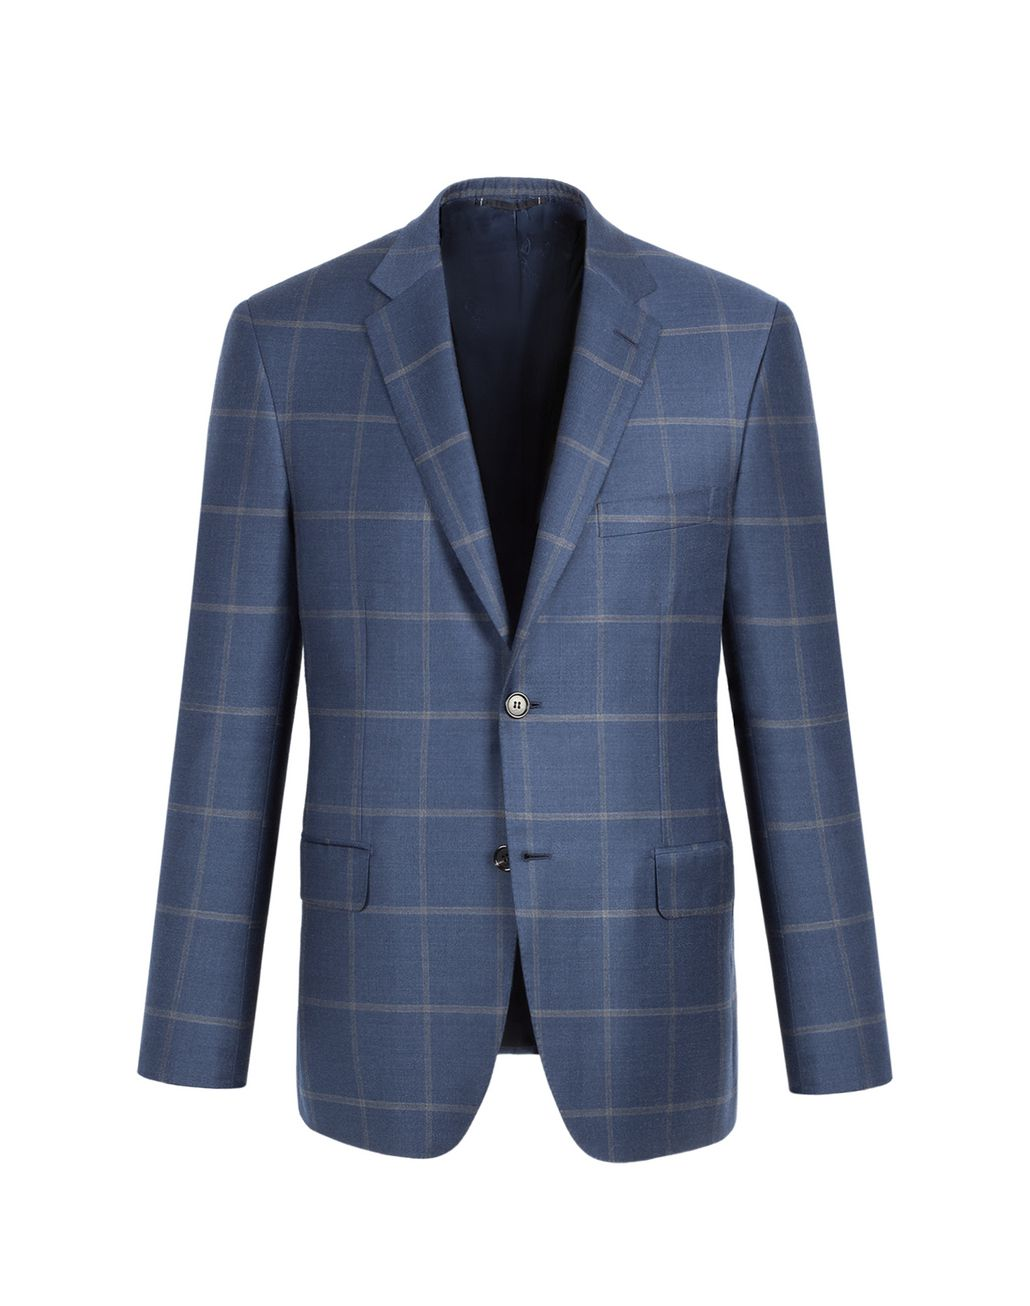 BRIONI Blue and Gray Overcheck Ravello Jacket Jackets U f